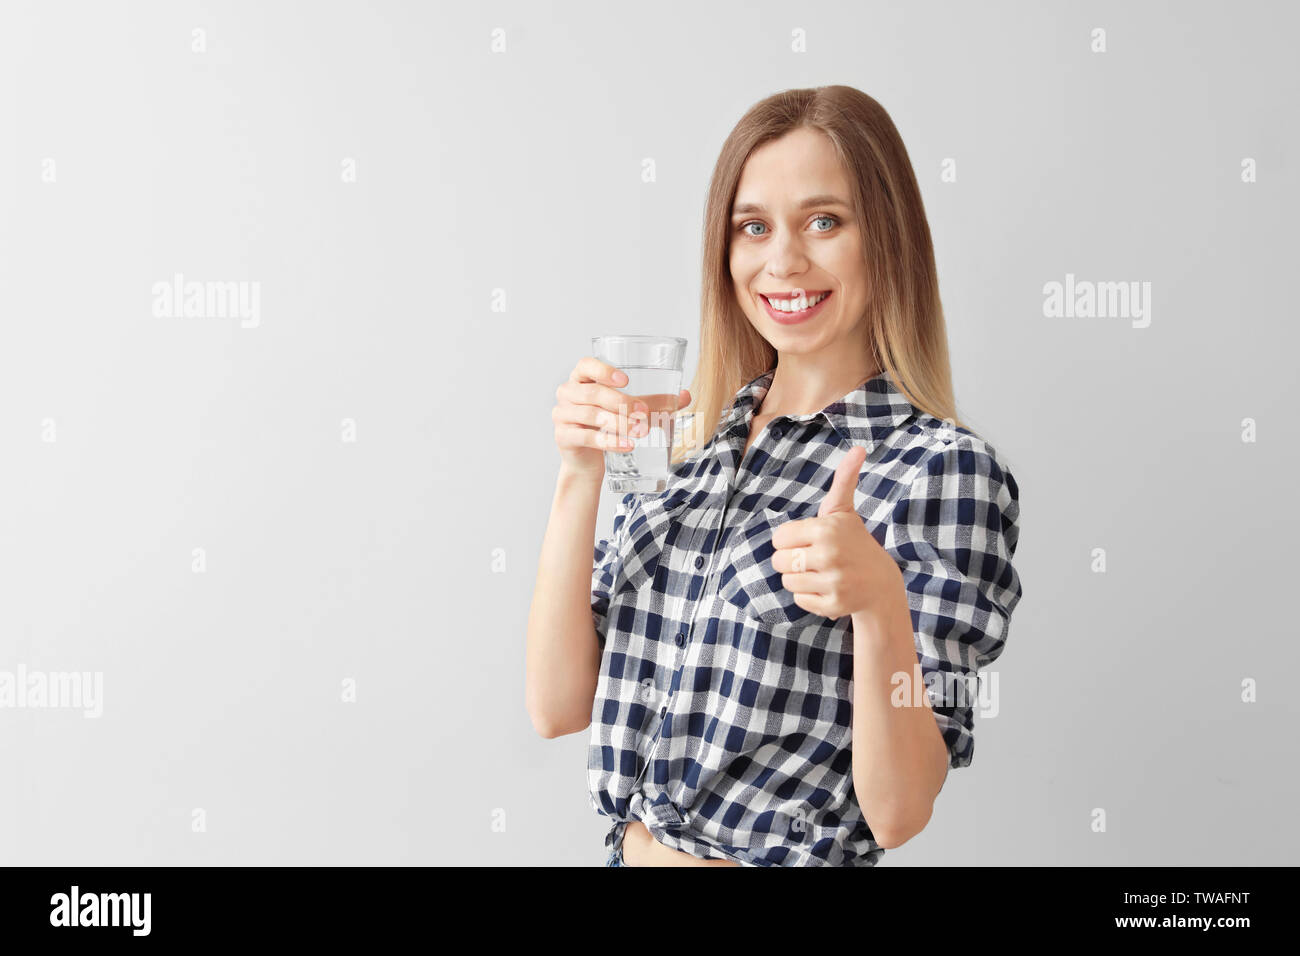 Beautiful young woman with glass of water showing thumb-up gesture on light background - Stock Image